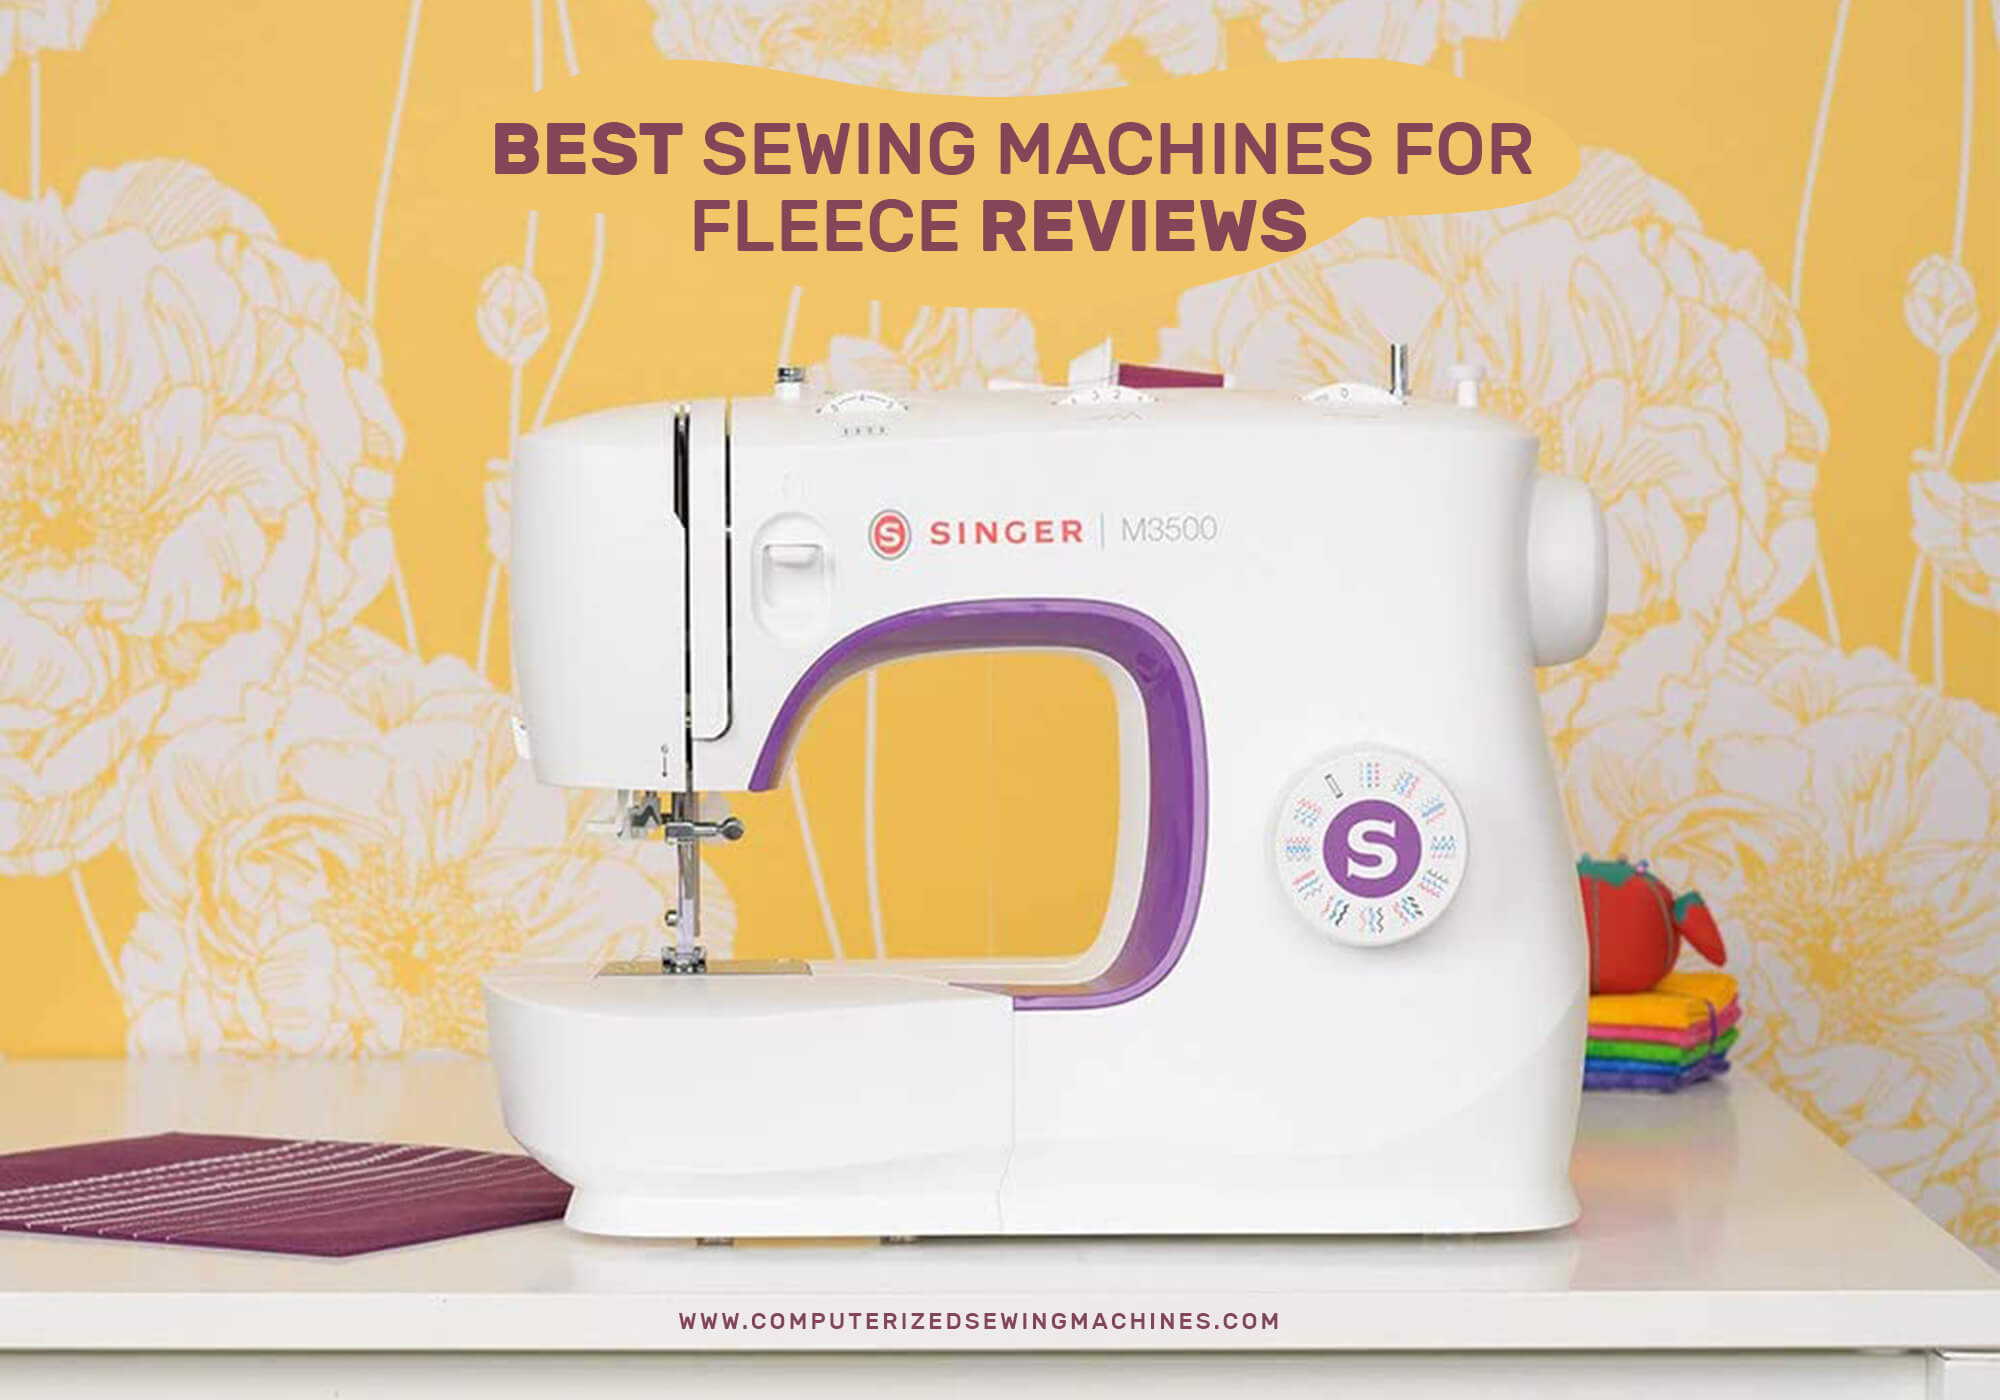 5 Best Sewing Machines for Fleece [Reviews]